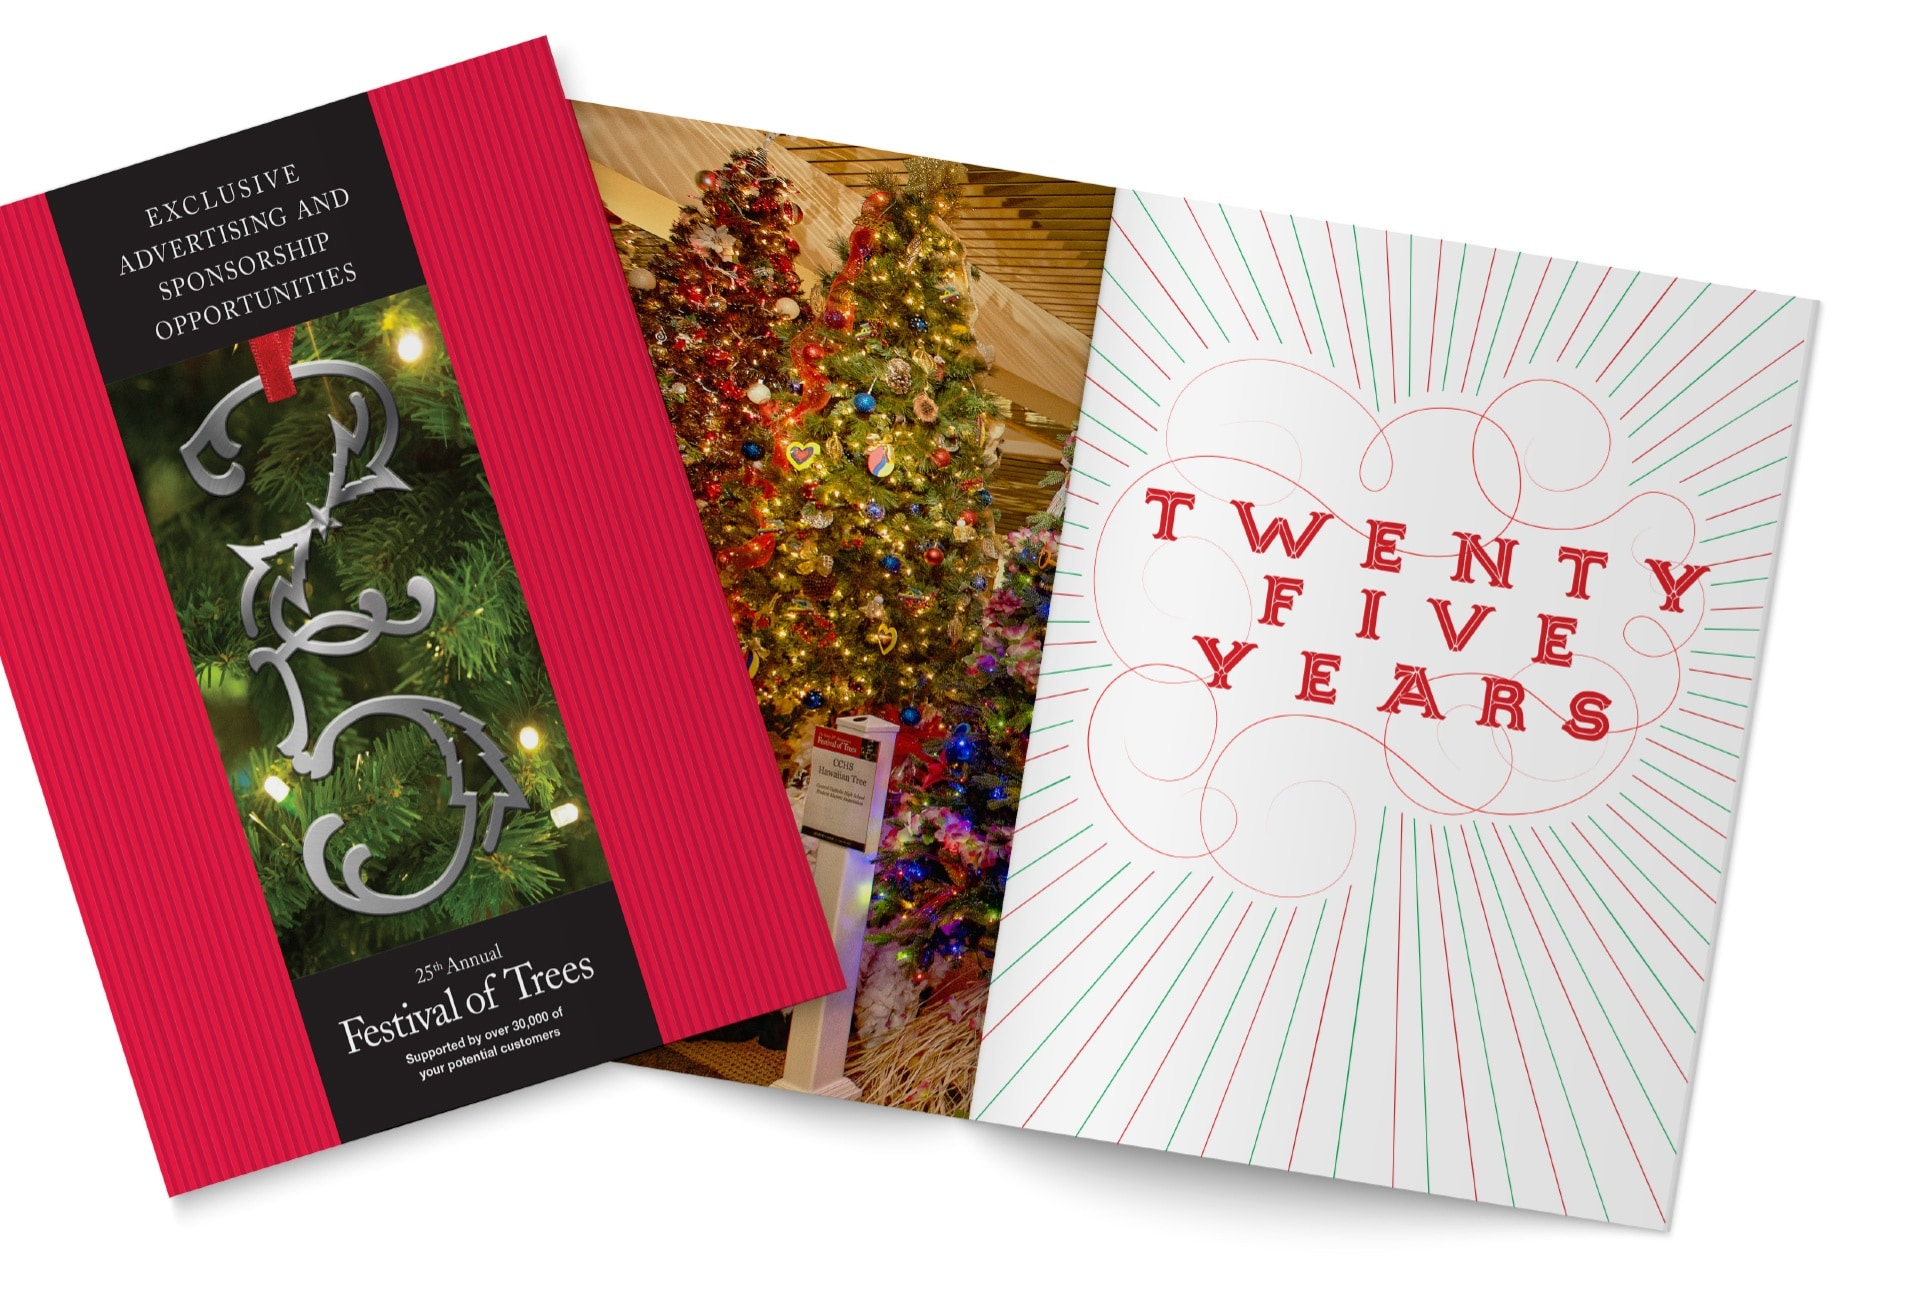 A custom booklet highlighted the history, mission, and key sponsorship opportunities for the Festival of Trees .